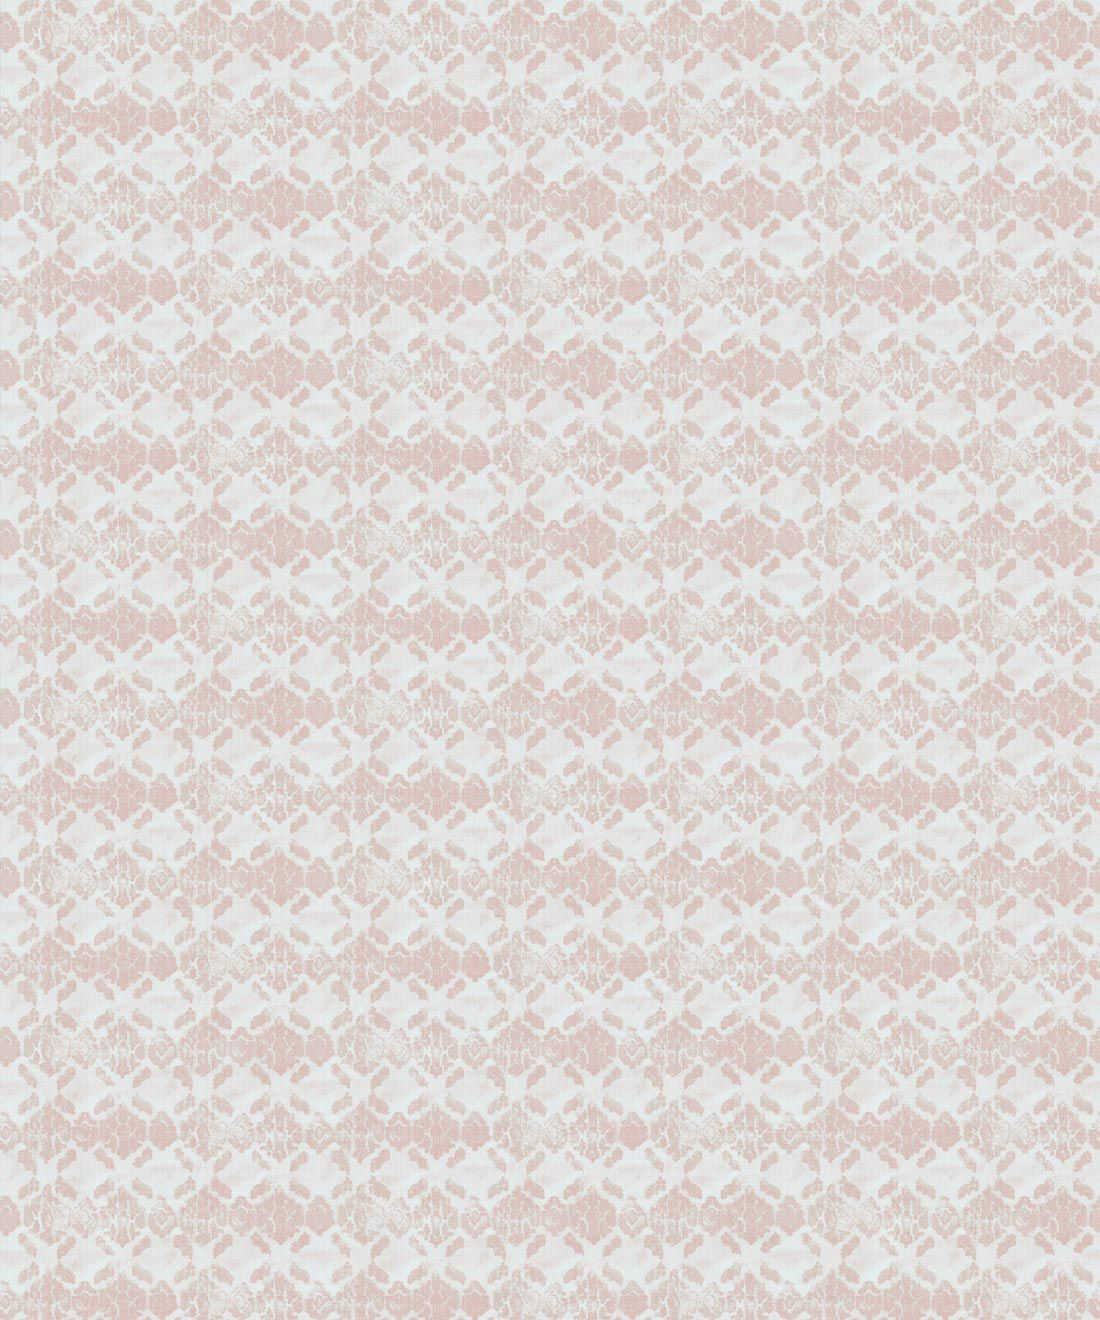 Peach Ikat Wallpaper • Shibori